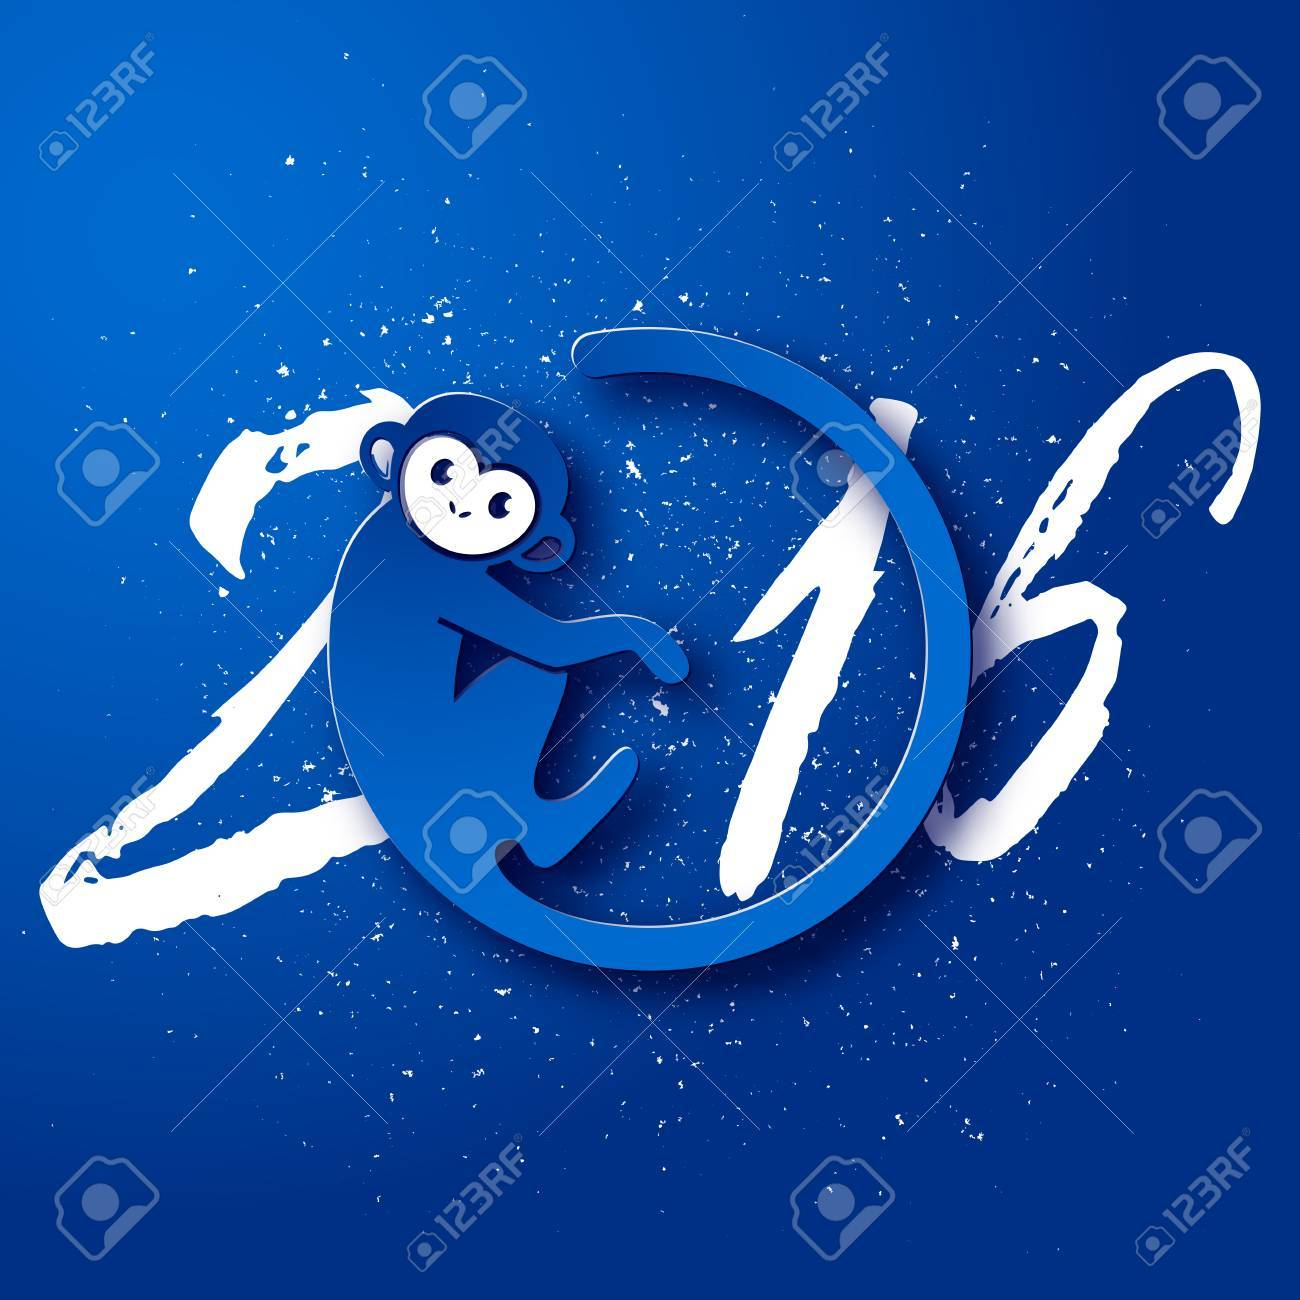 cute new year postcard with monkey symbol on blue background year of the monkey 2016